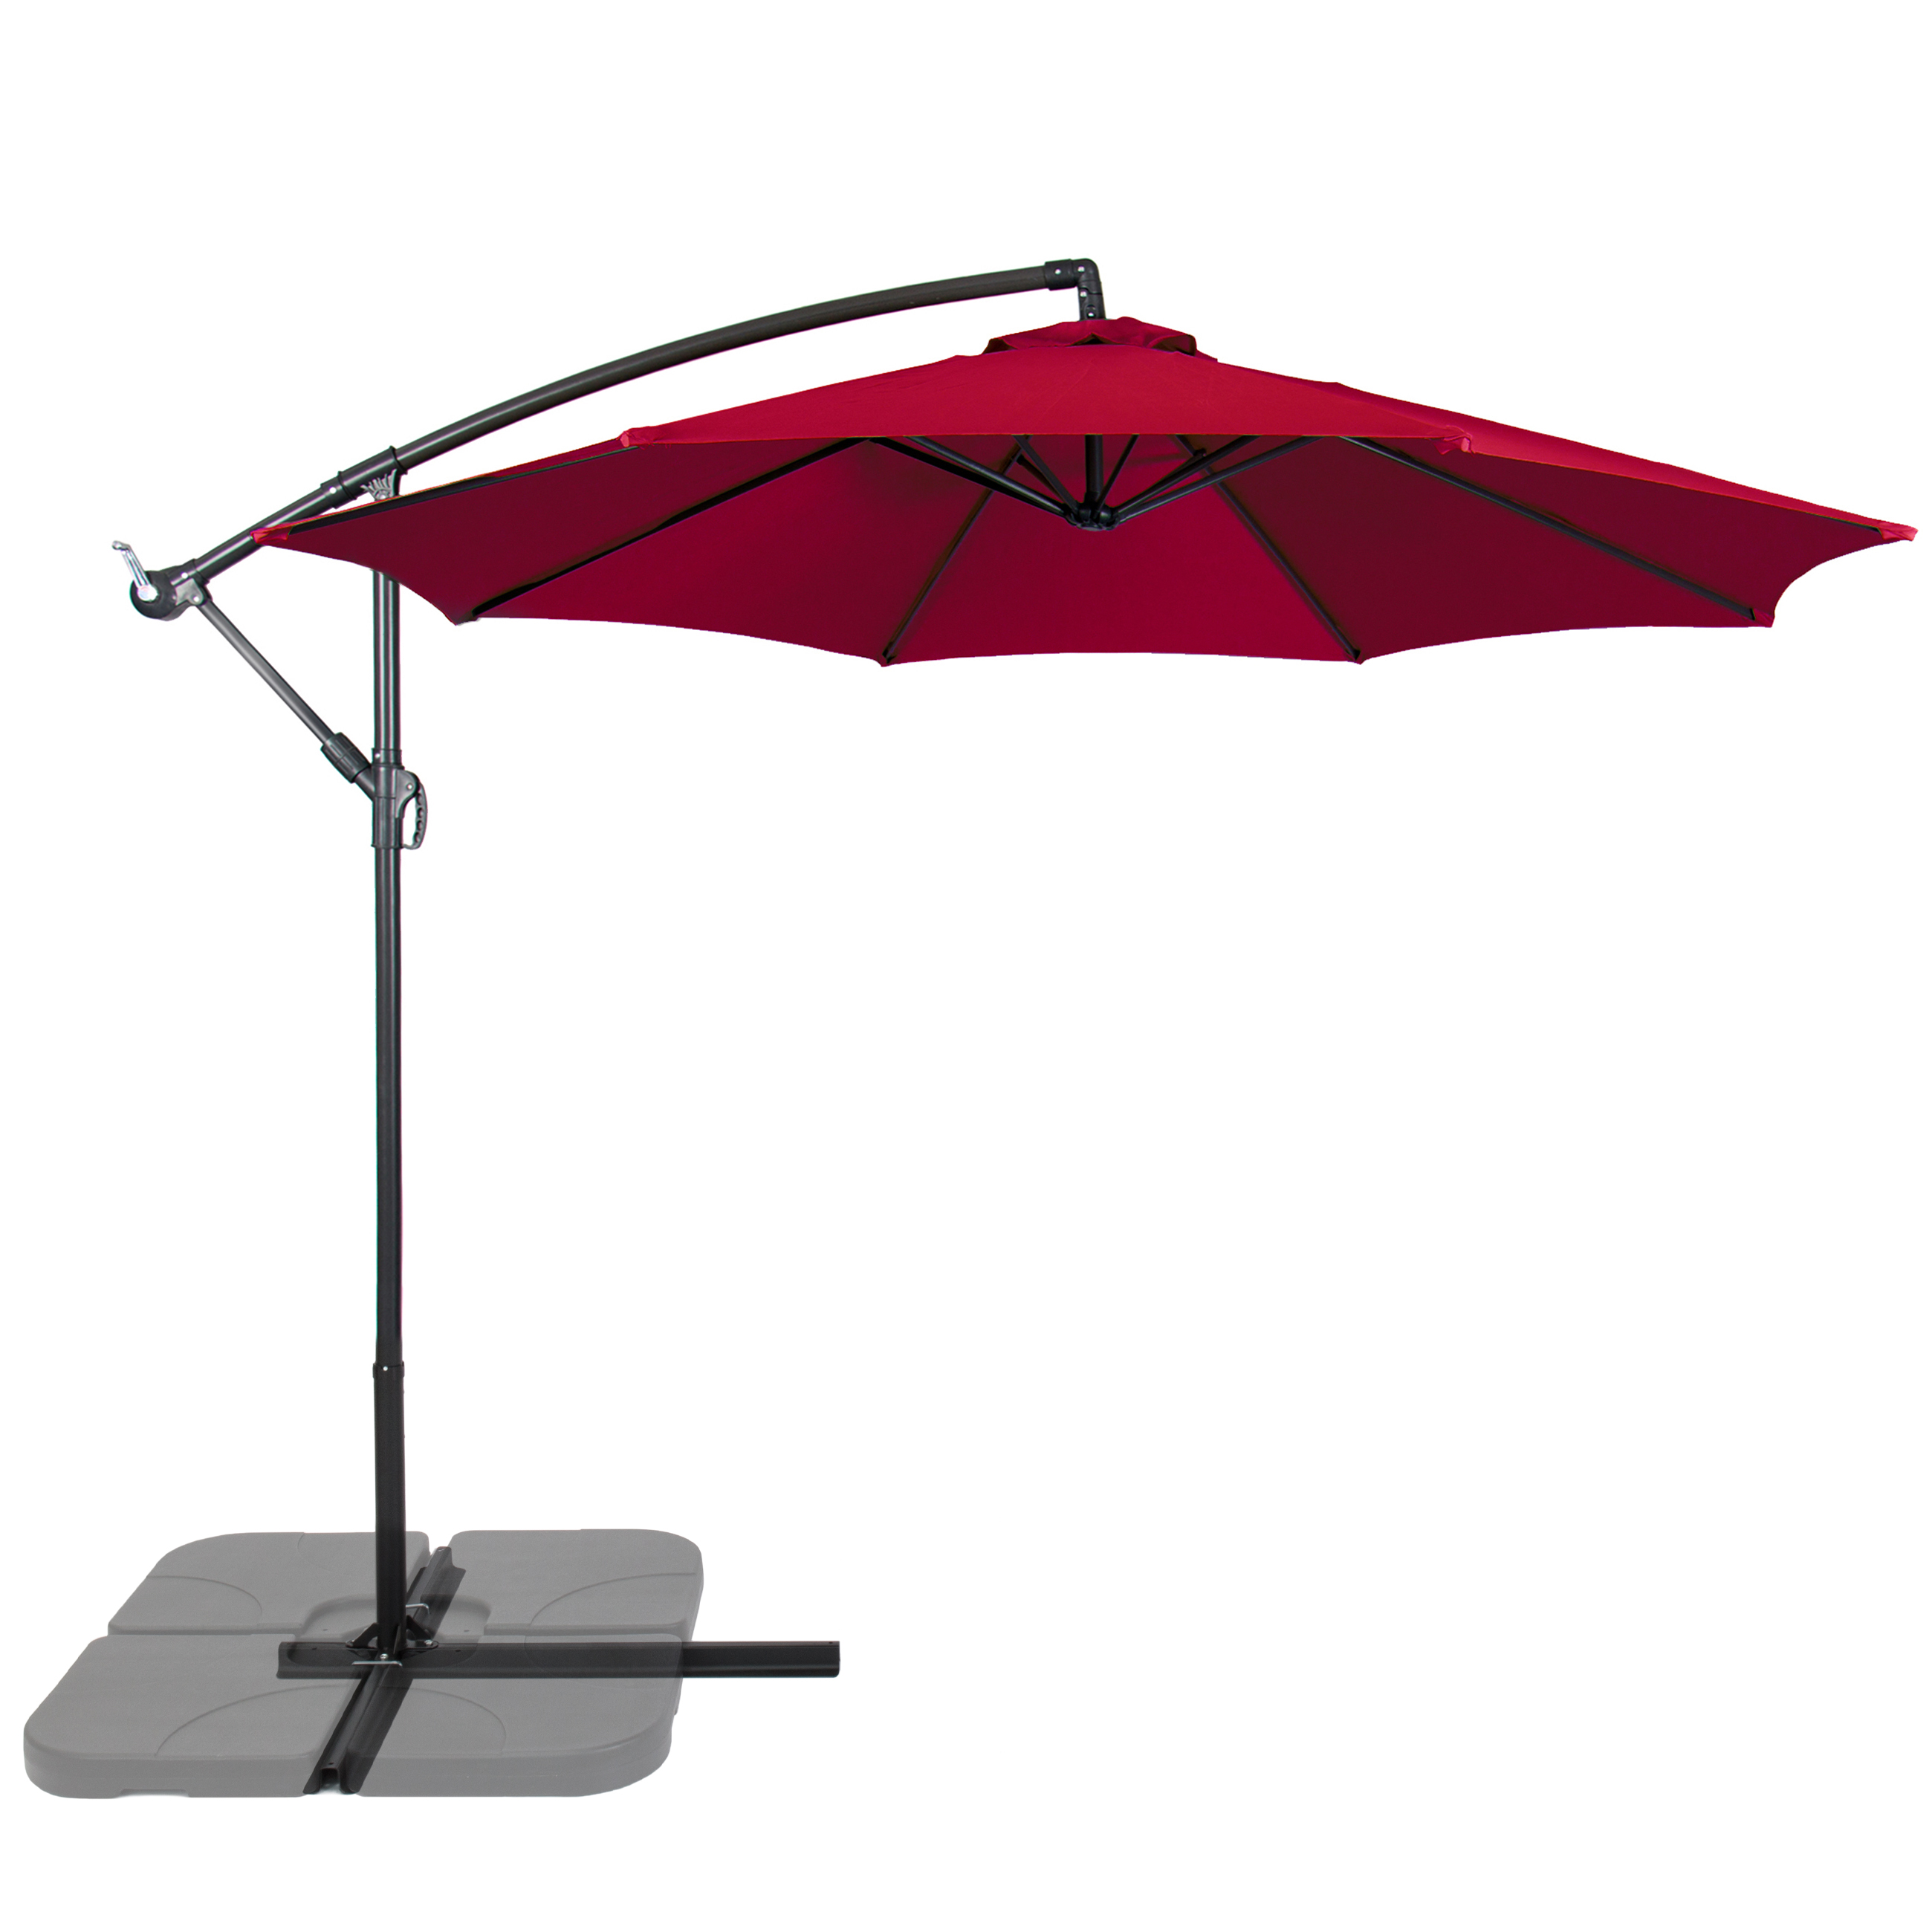 Best Choice Products Patio Umbrella Offset 10u0027 Hanging Umbrella Outdoor  Market Umbrella New   Multiple